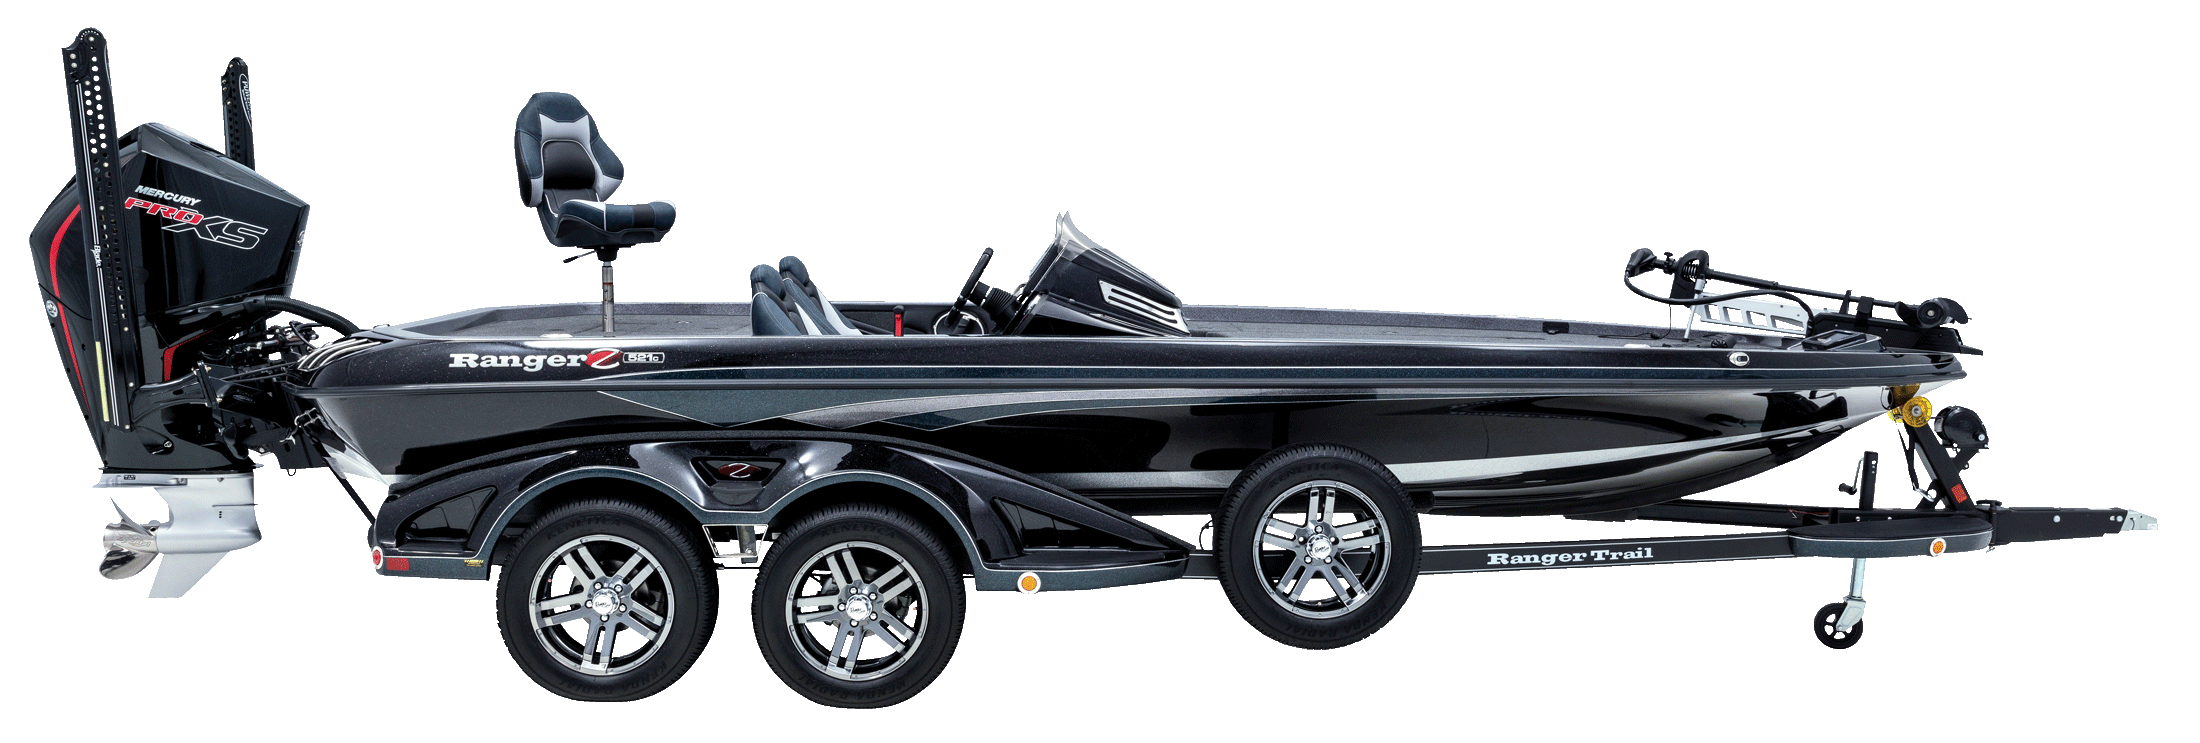 Ranger Z521c Ranger Cup Equipped, the best tournament bass boat